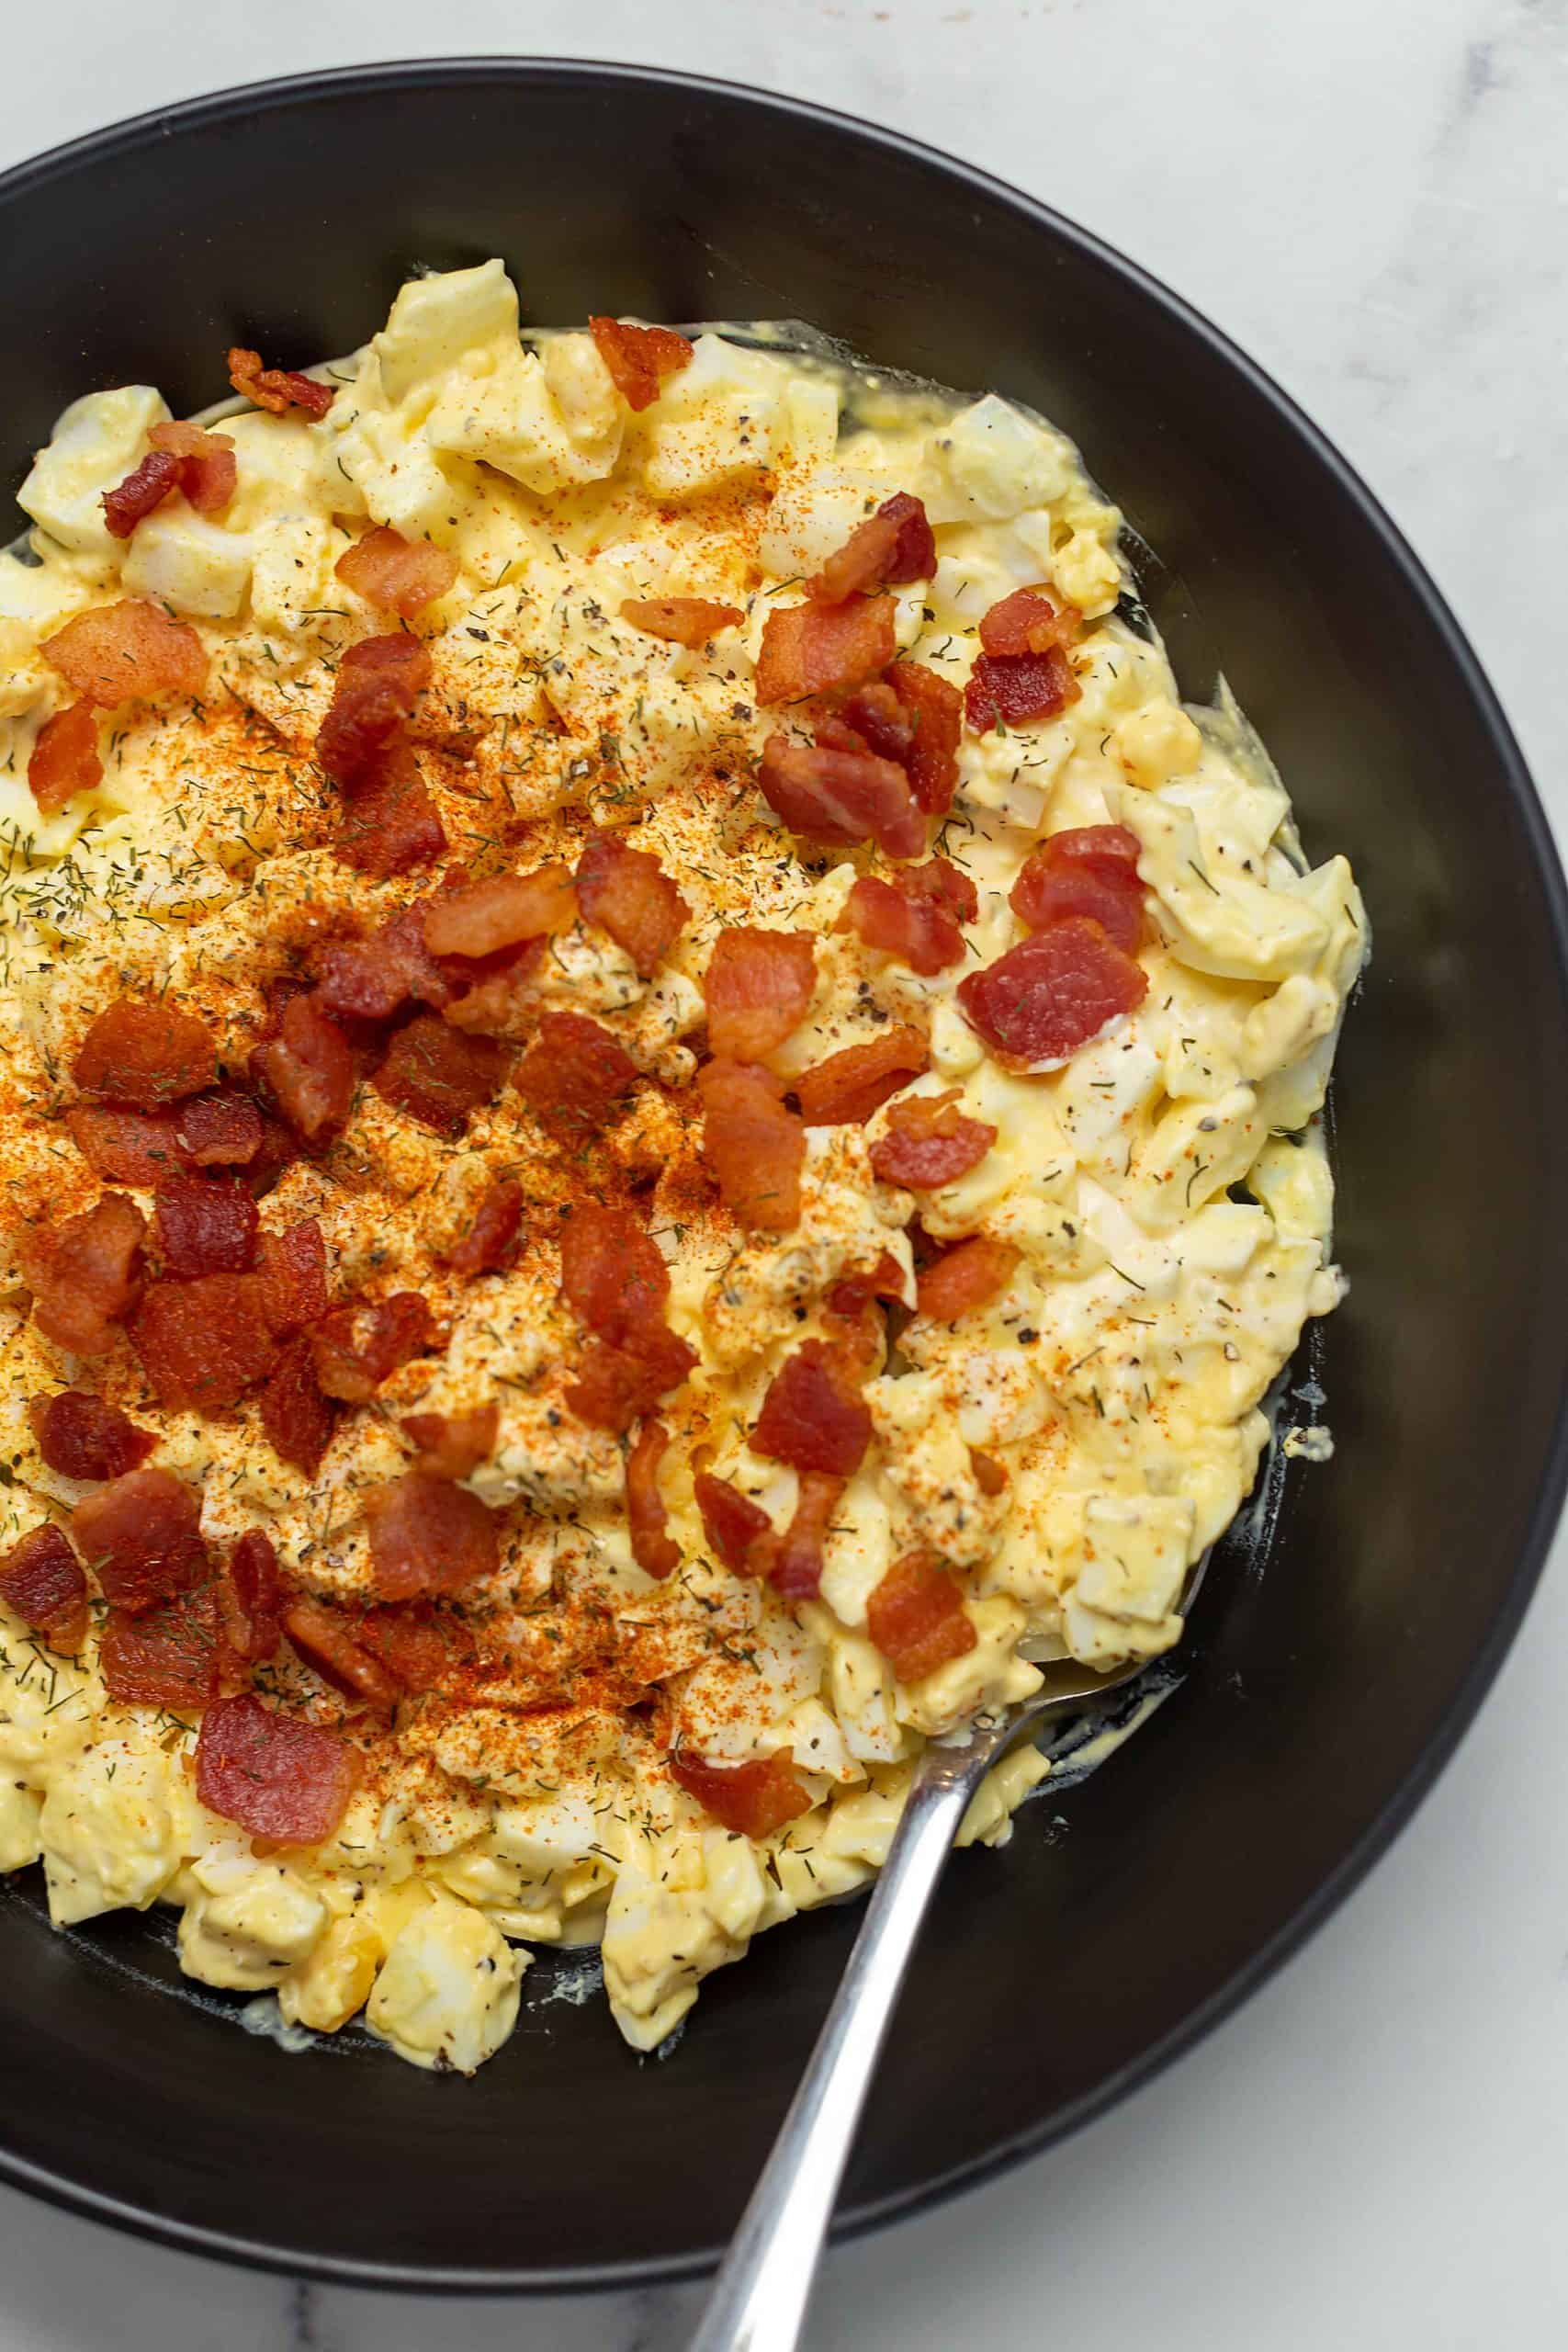 keto egg salad with bacon in a black bowl